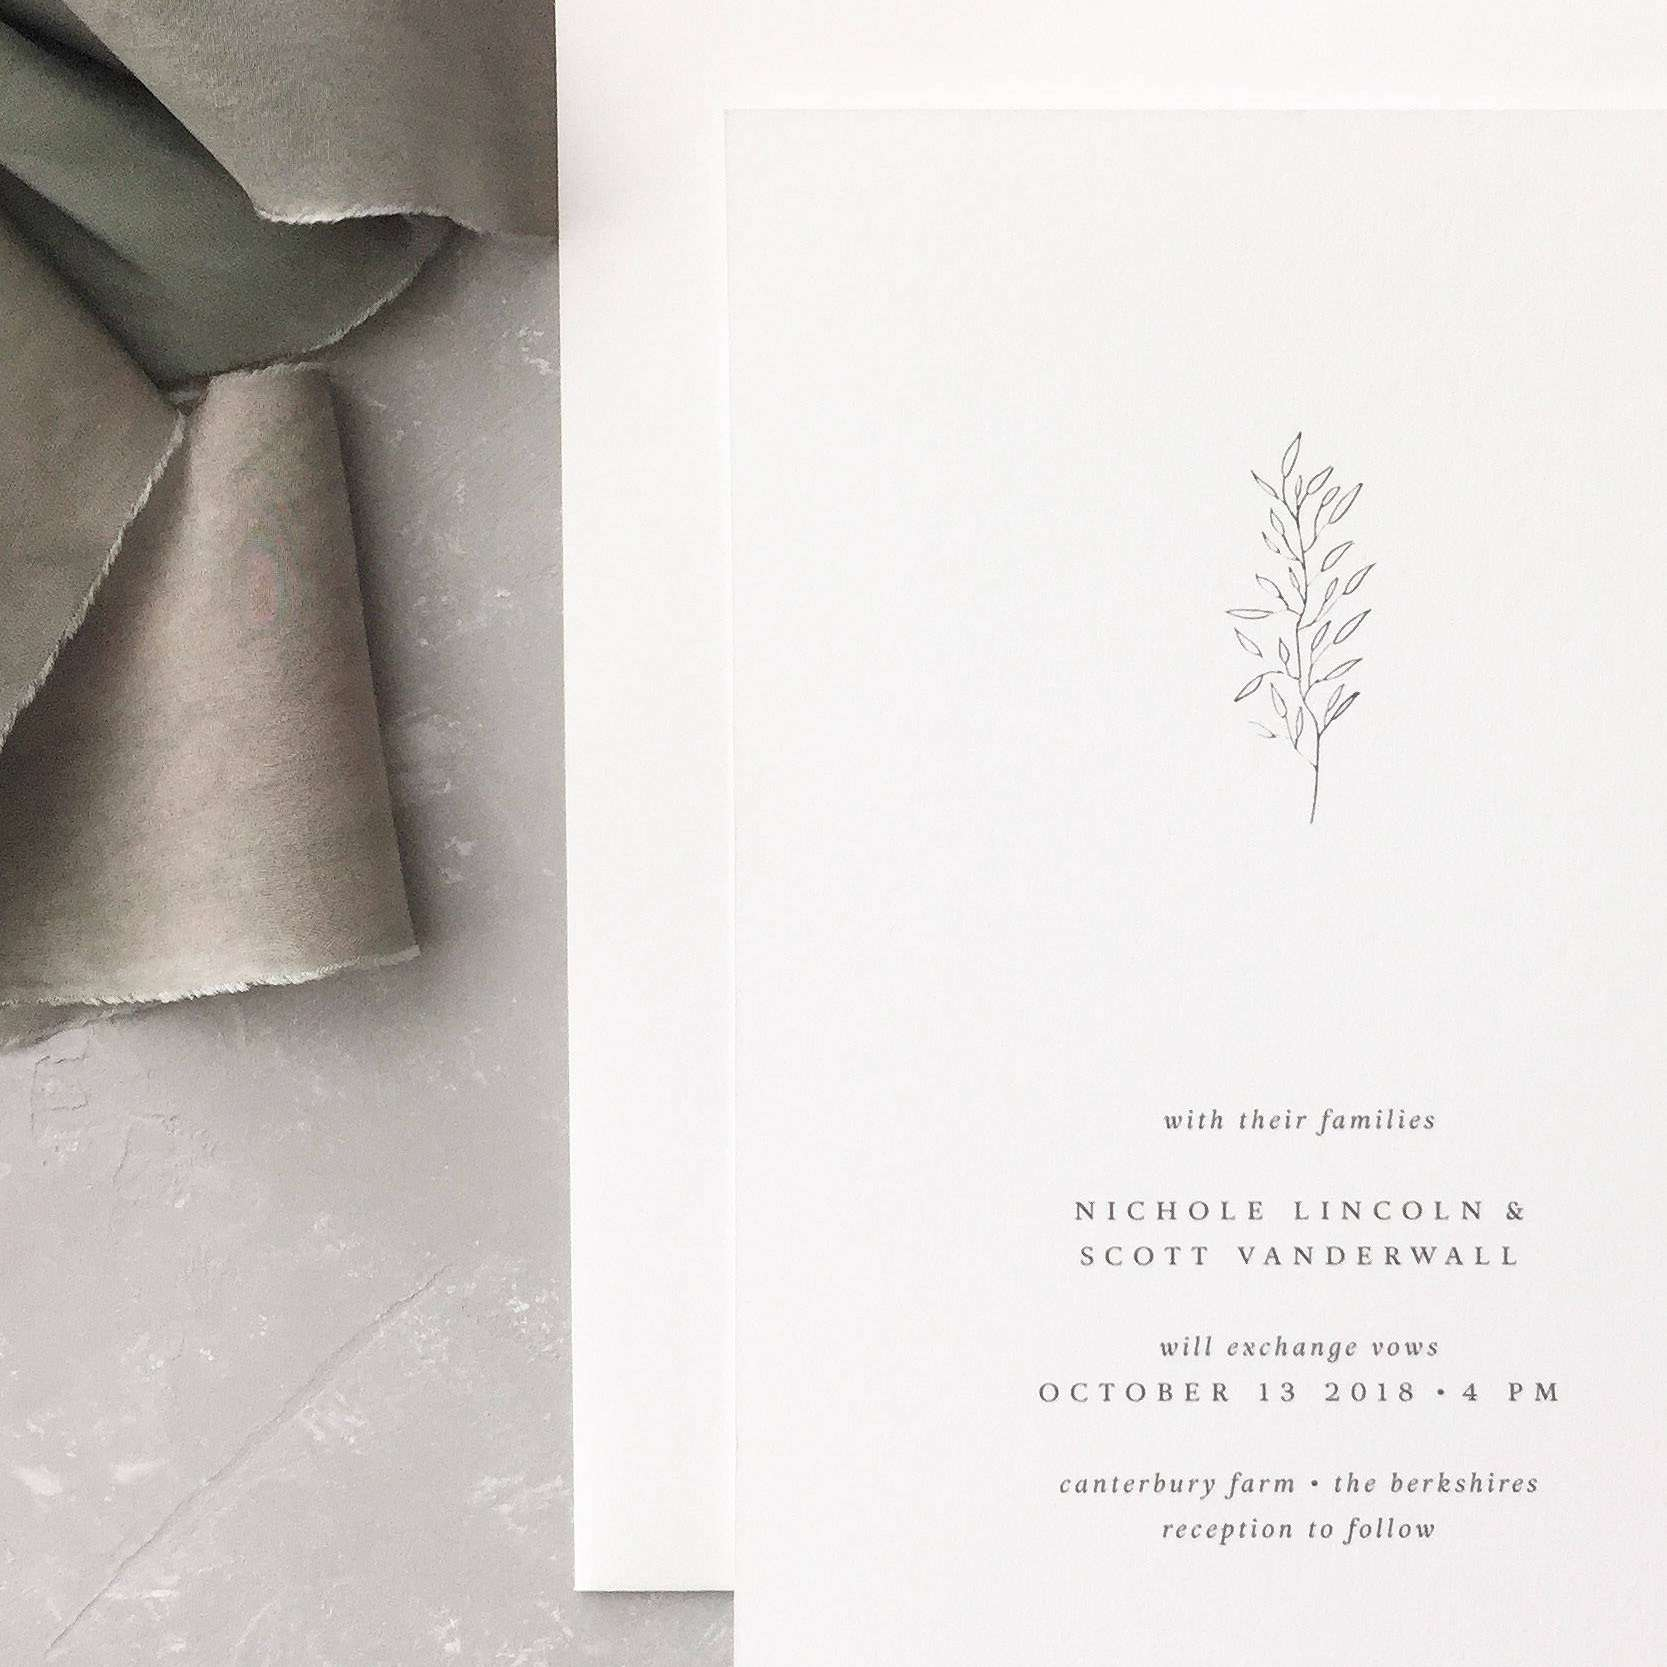 Gallery Minimalist Wedding Invitations: 10 Chic Minimalist Wedding Invitations